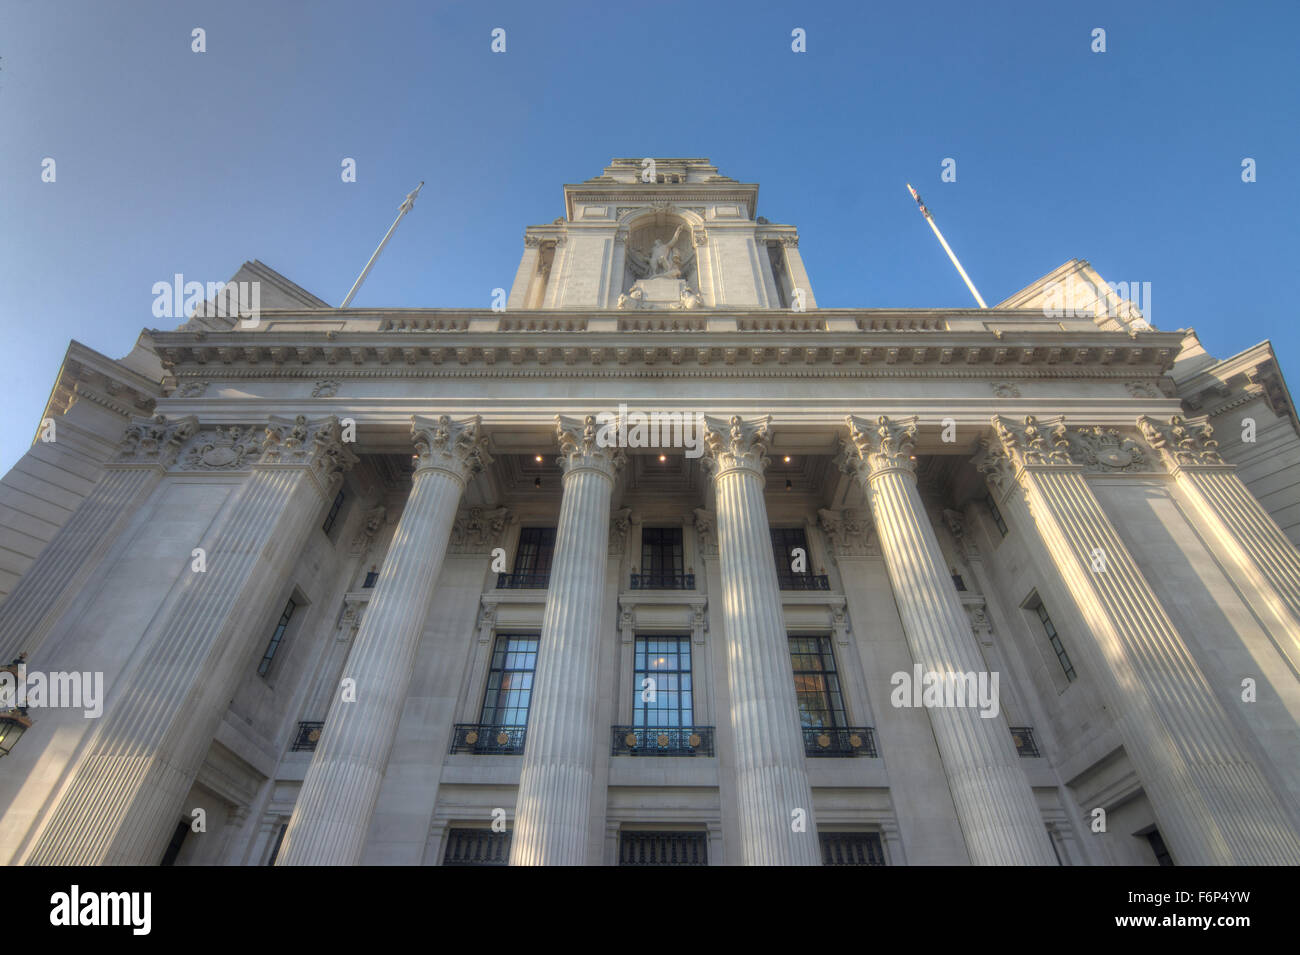 Old Port of London Building Four Season Hotel  Ten Trinity Square - Stock Image